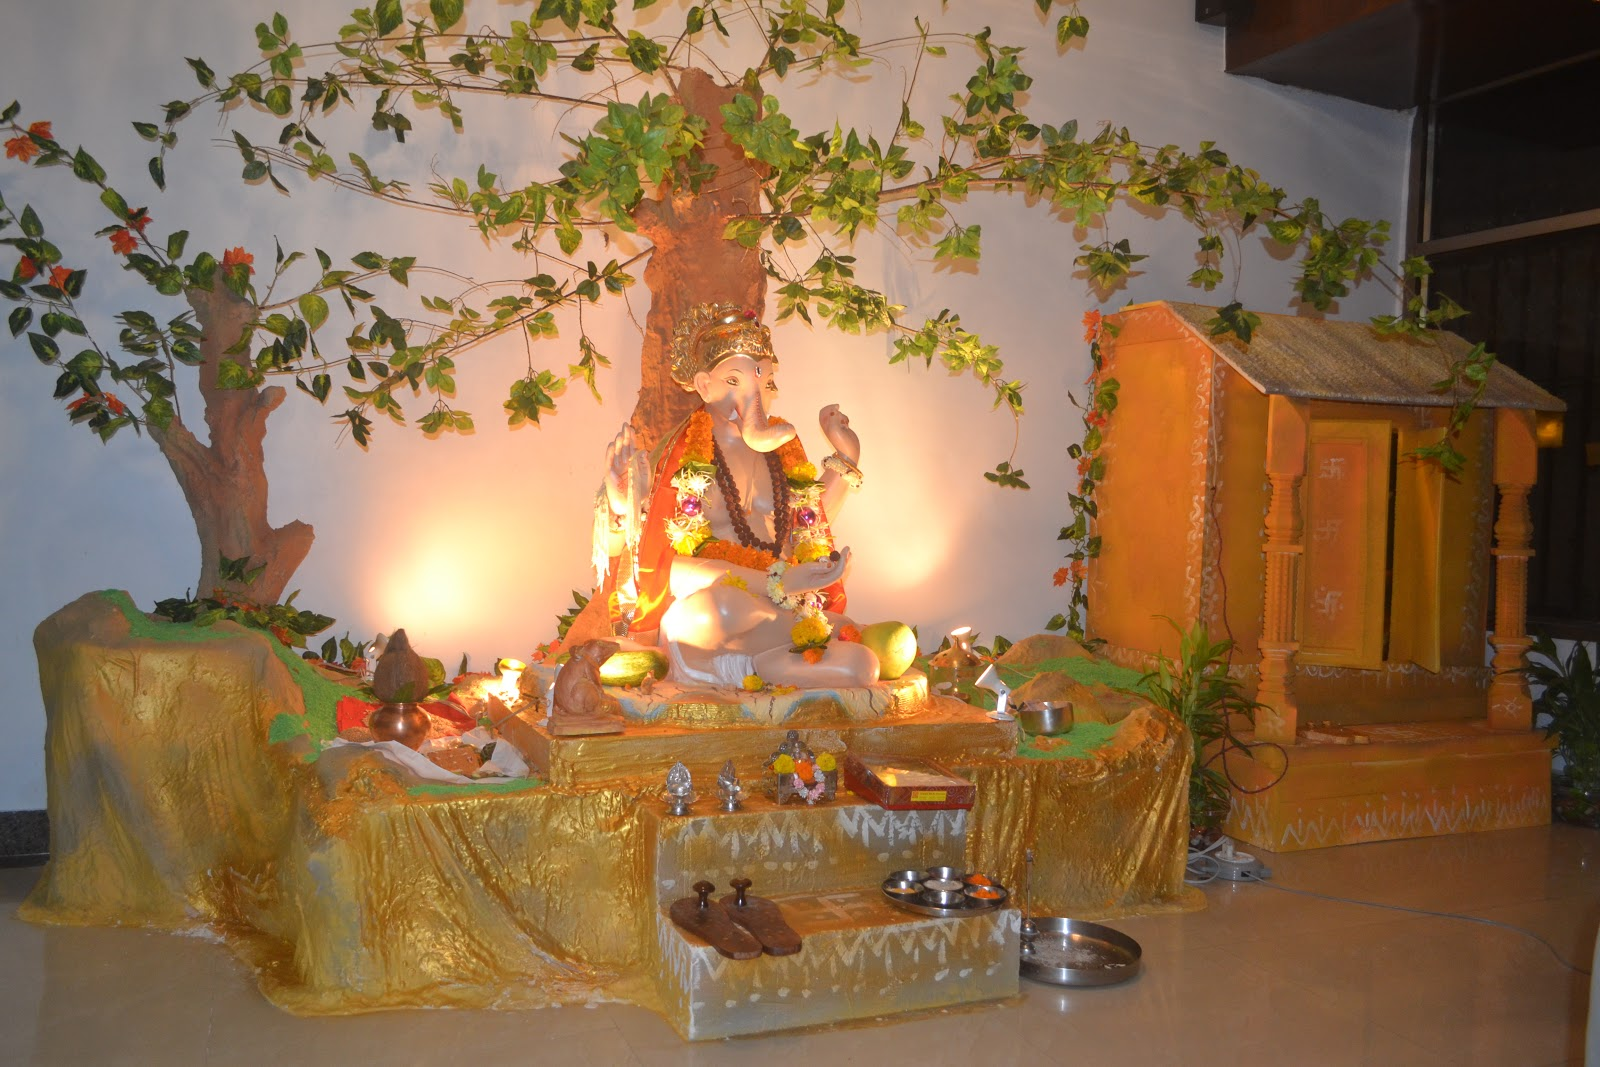 Magic holidays ganesh utsav 2012 decoration competition for Decoration ganpati